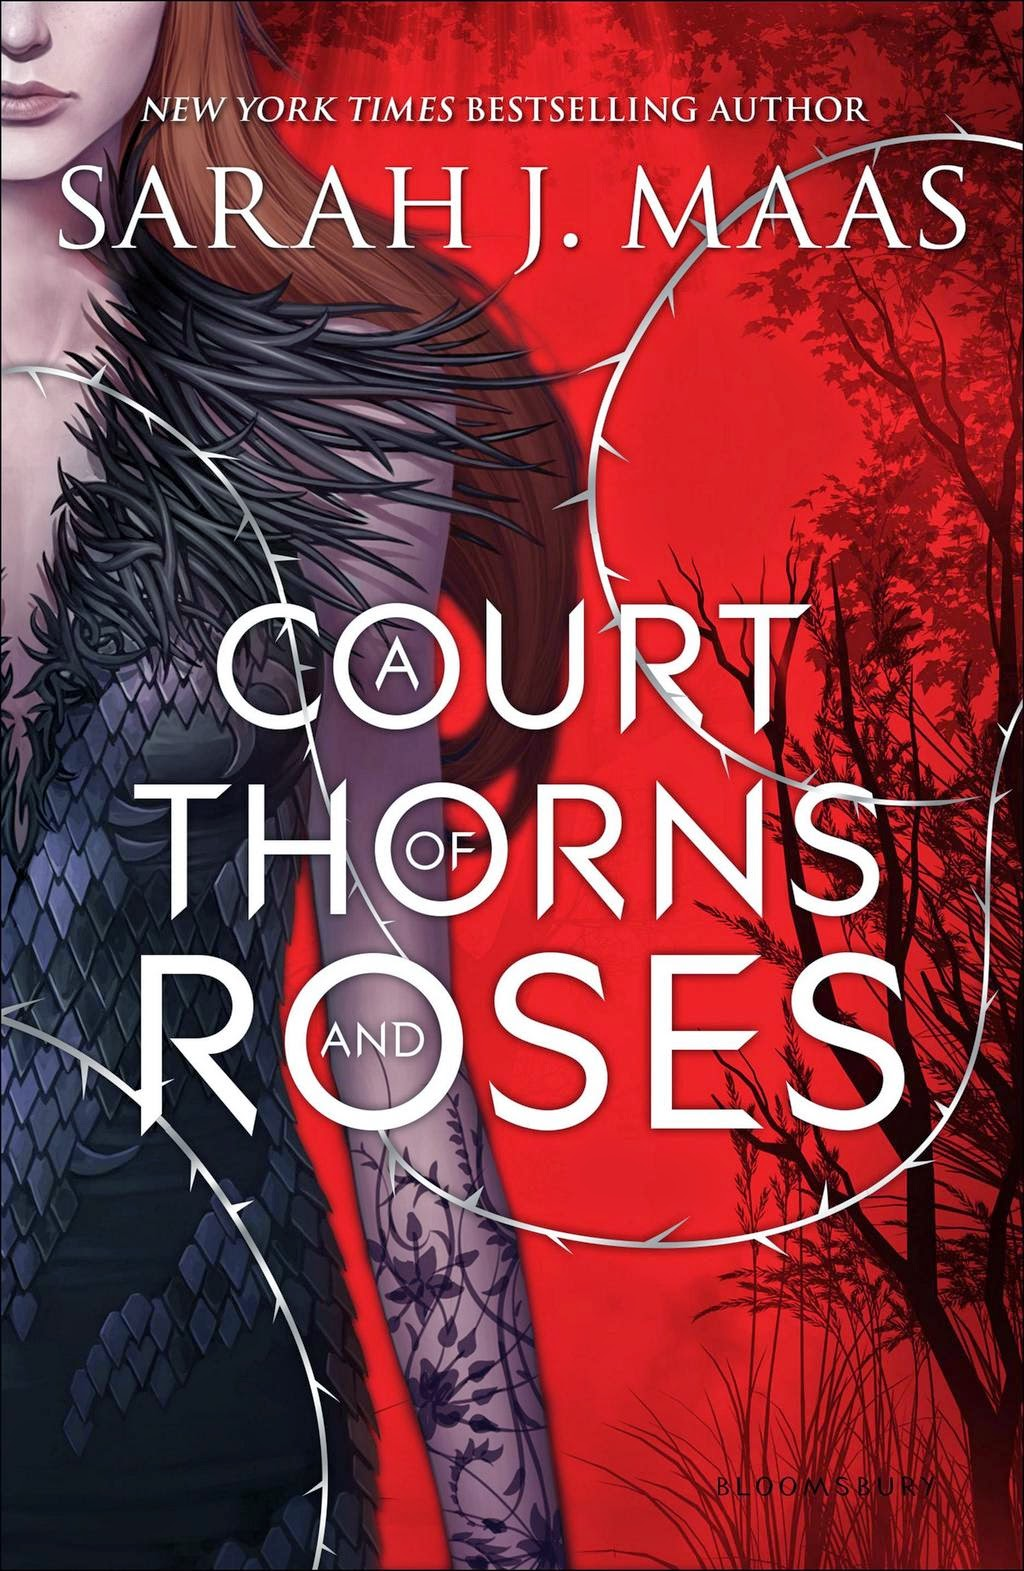 a court of thorns and roses sarah j maas throne of glass 2015 publication cover reveal large hd ya fantasy